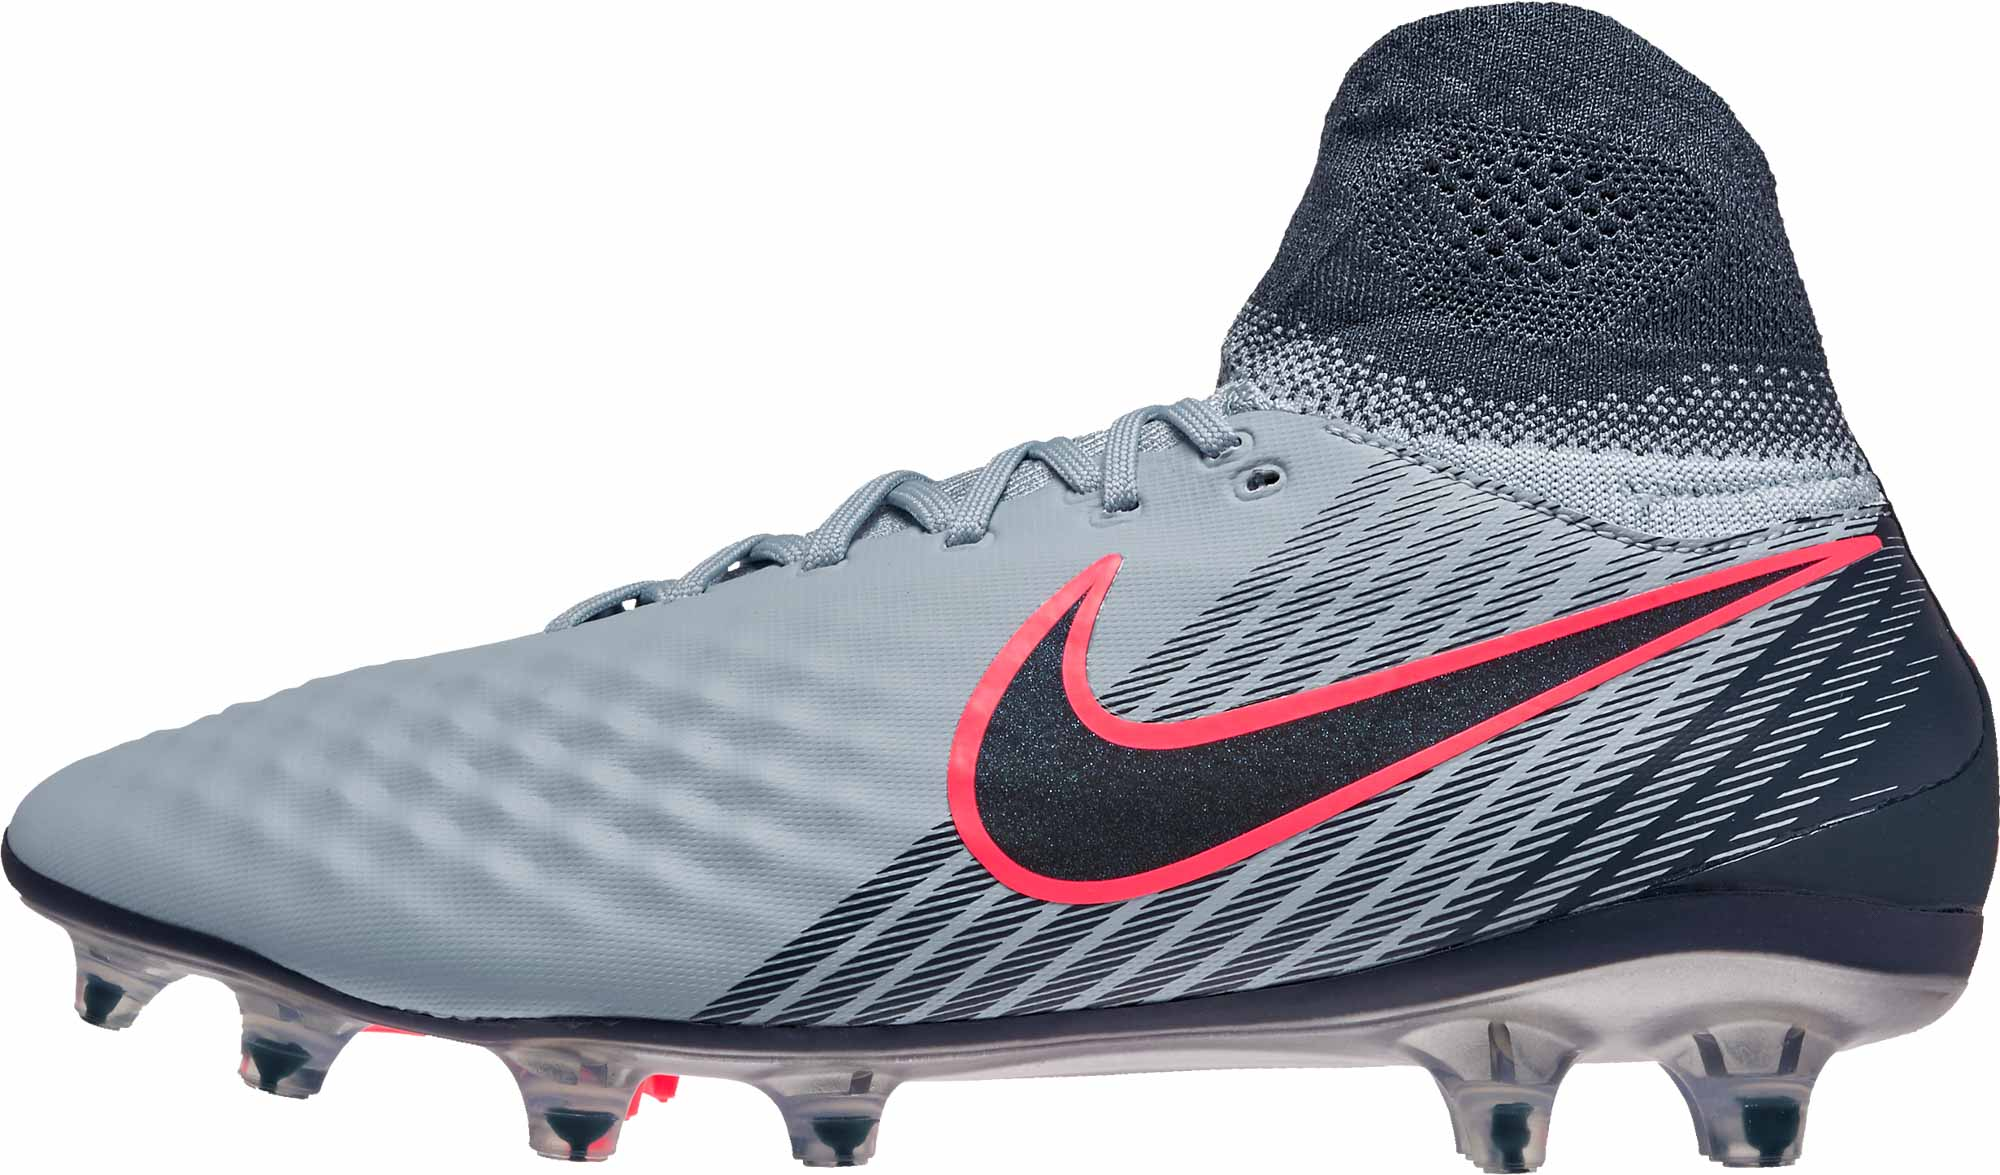 168bcd30257 Nike Magista Orden II FG Soccer Cleats - Light Armory Blue & Armory ...